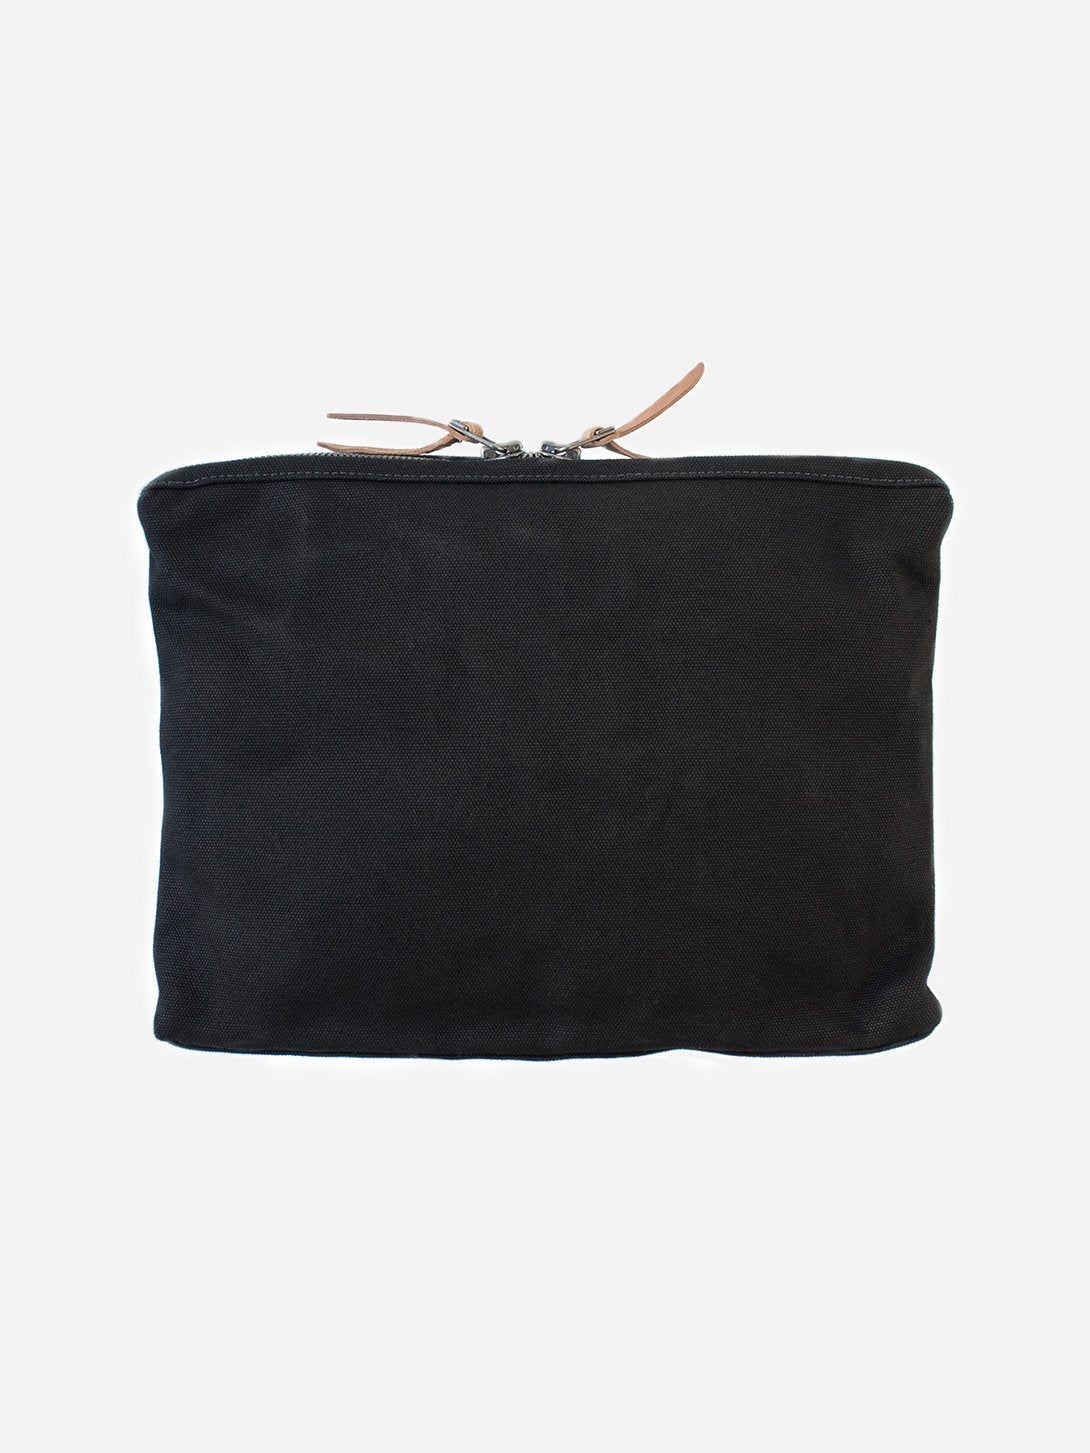 BLACK men and women unisex canvas organizational pouch organizer pouch large makr